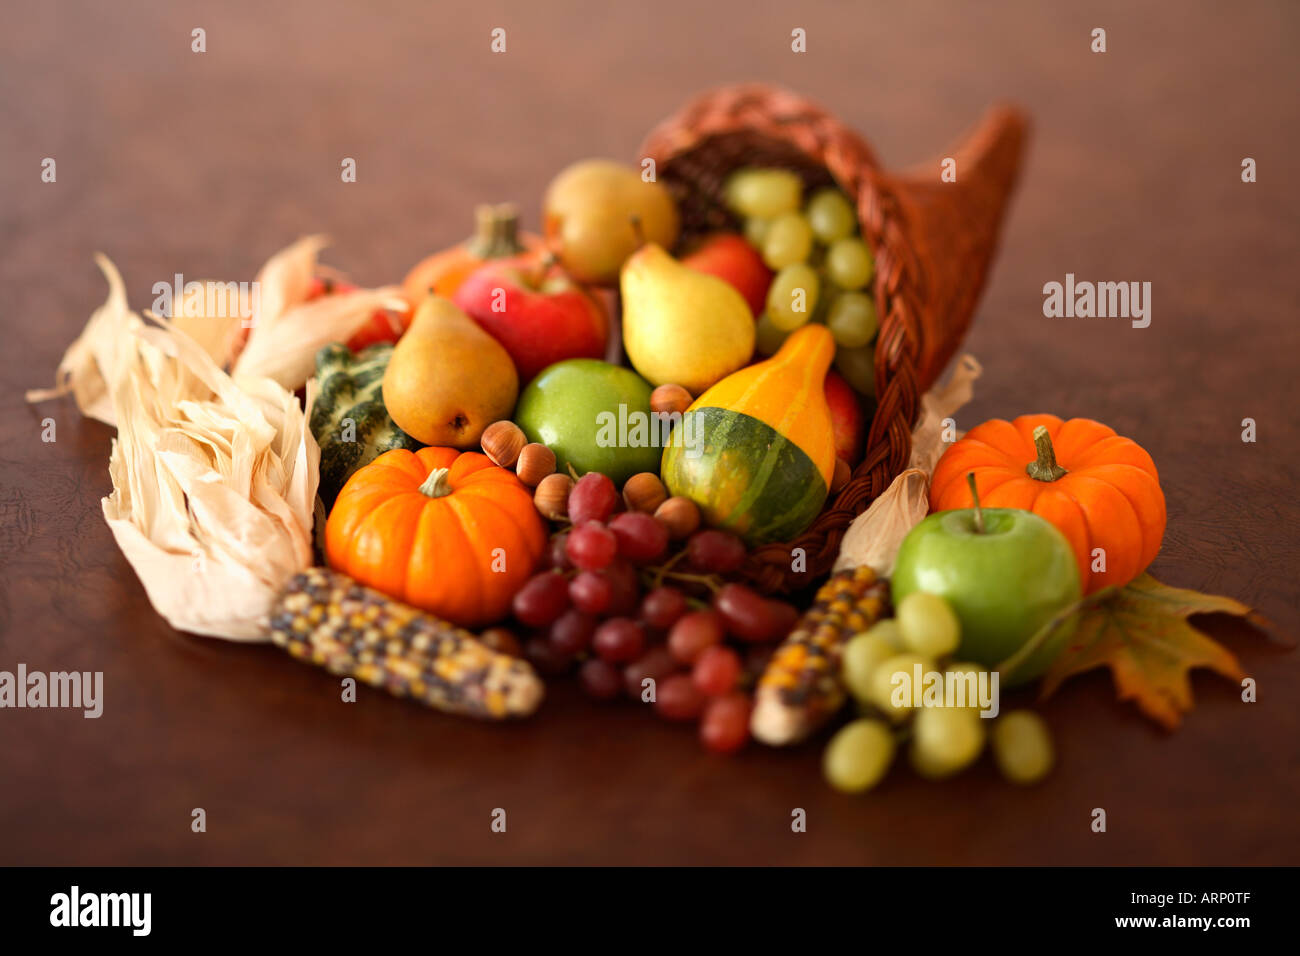 Cornucopia with Fall Gourds, Indian Corn, and Fresh Fruits - Stock Image